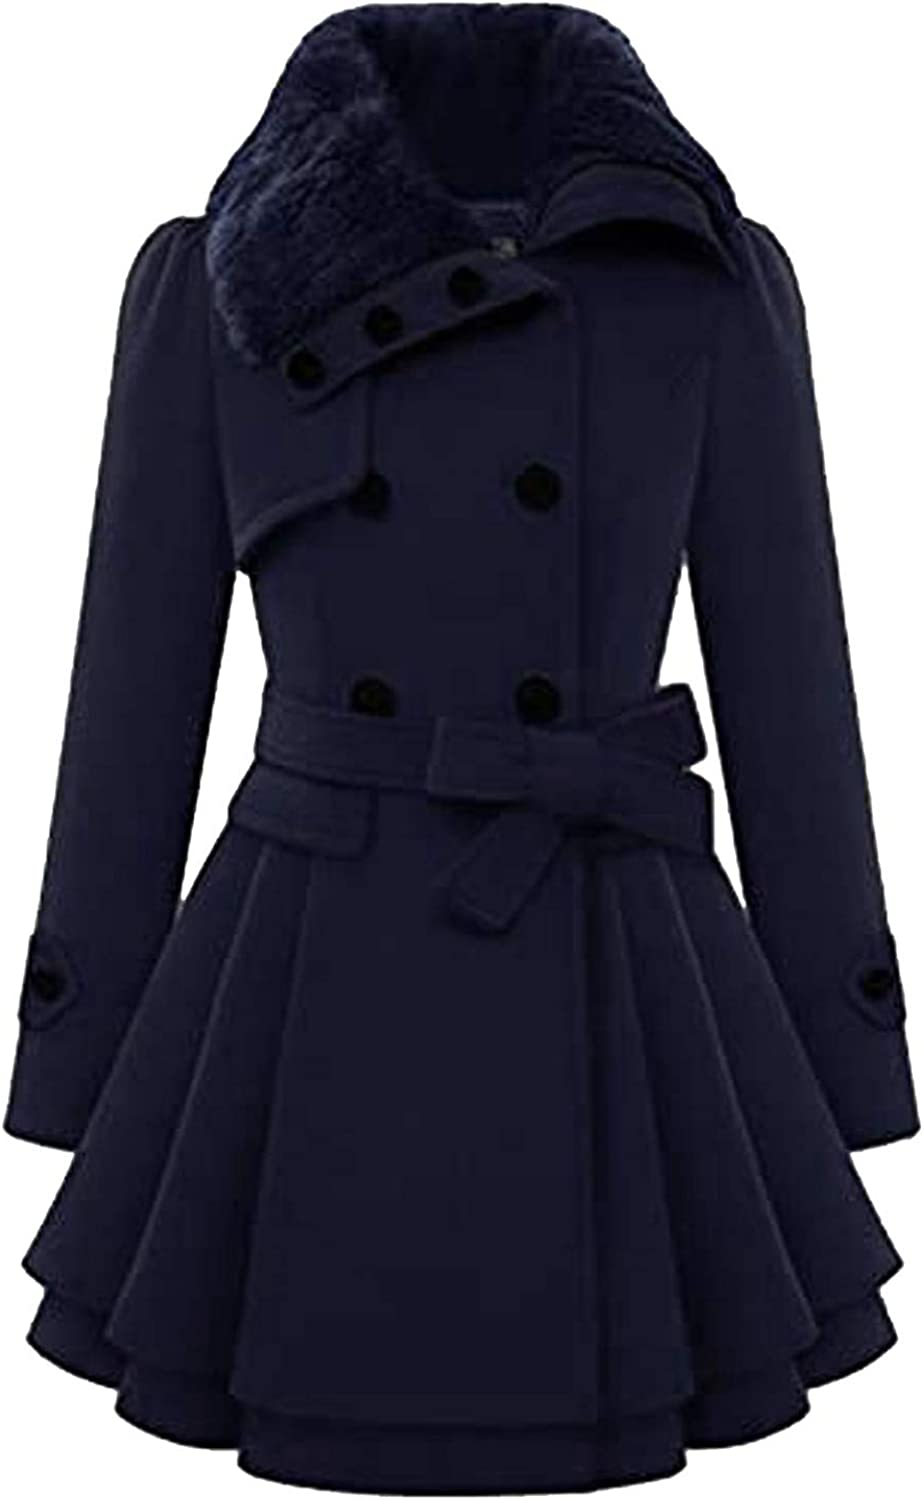 SSYUNO-women tops Womens Faux Fur Lapel Double Breasted Pea Coat Fashion Winter Thick Wool Trench Coat Jacket with Belt